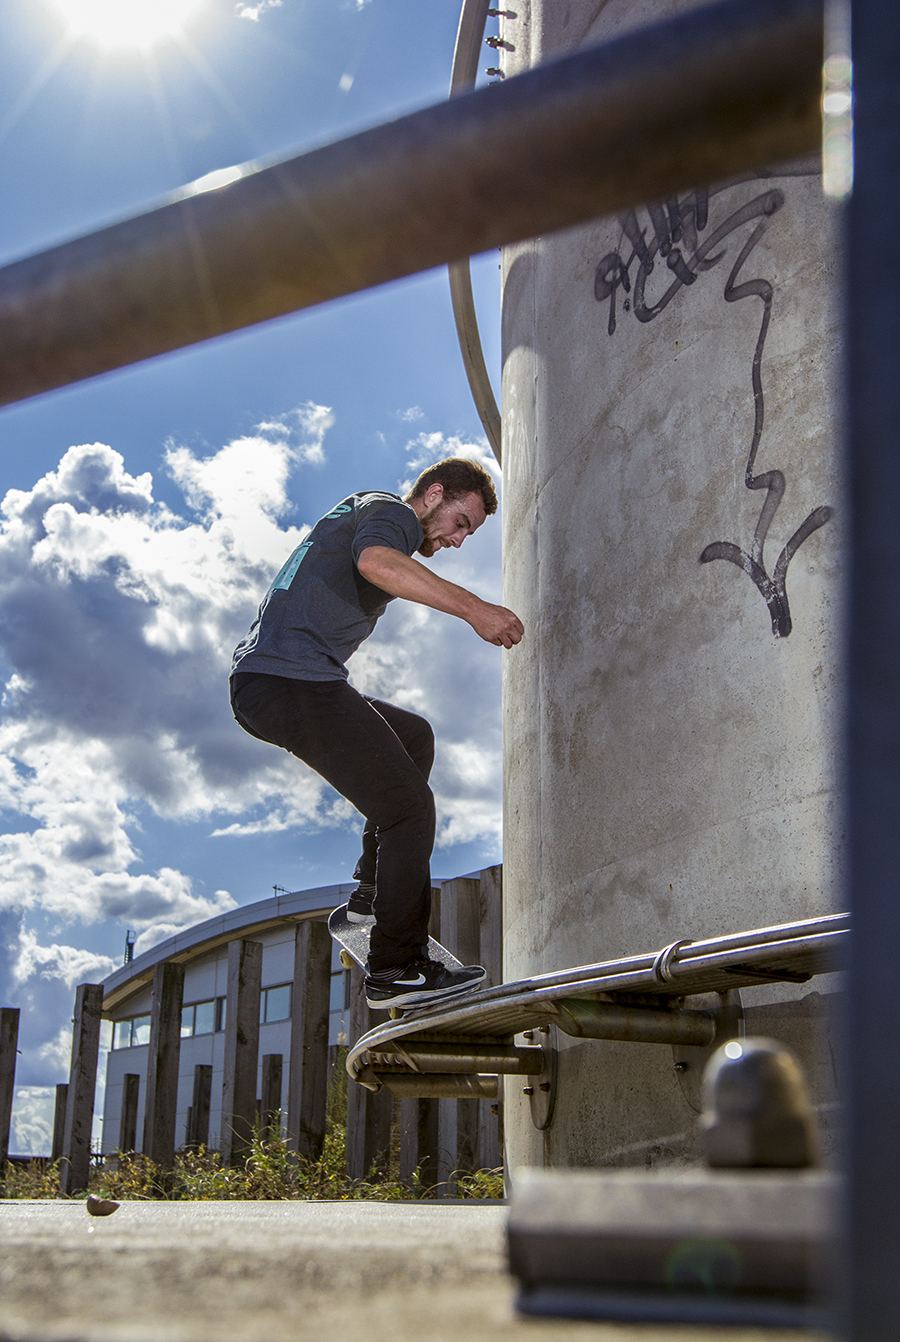 Jacob Attenborrow - FS Nose Grind